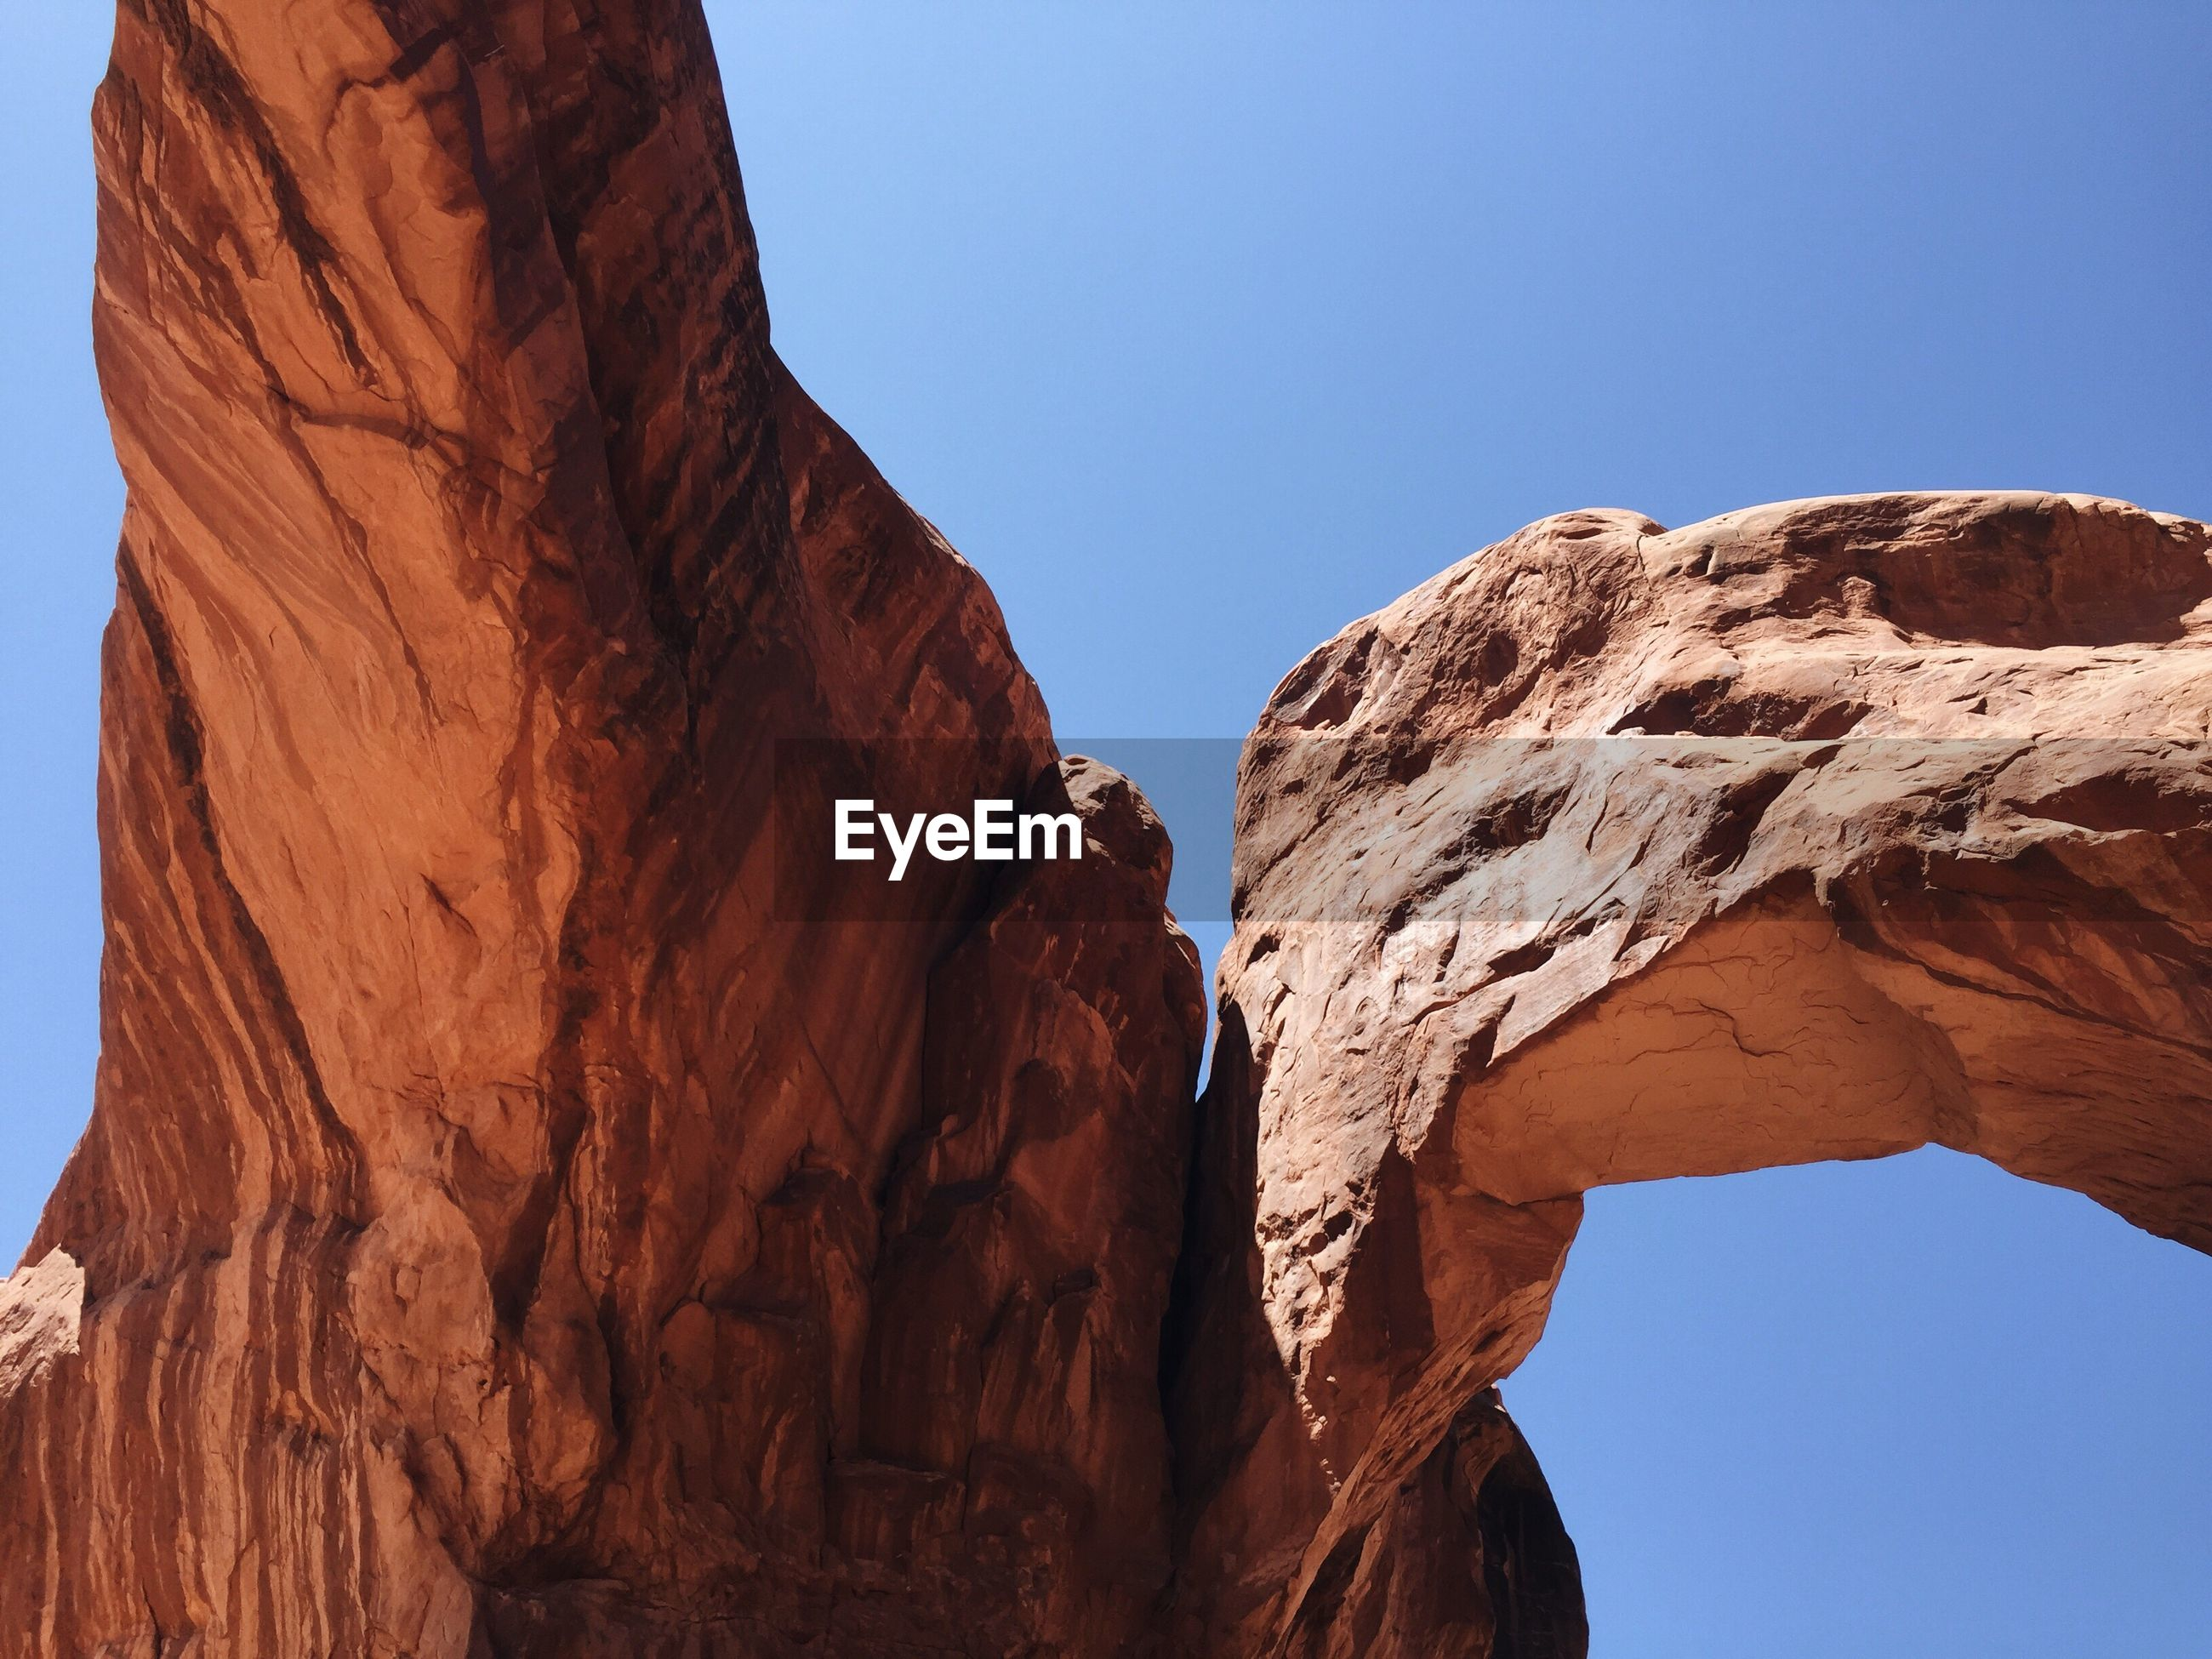 Rock formation against clear blue sky at arches national park